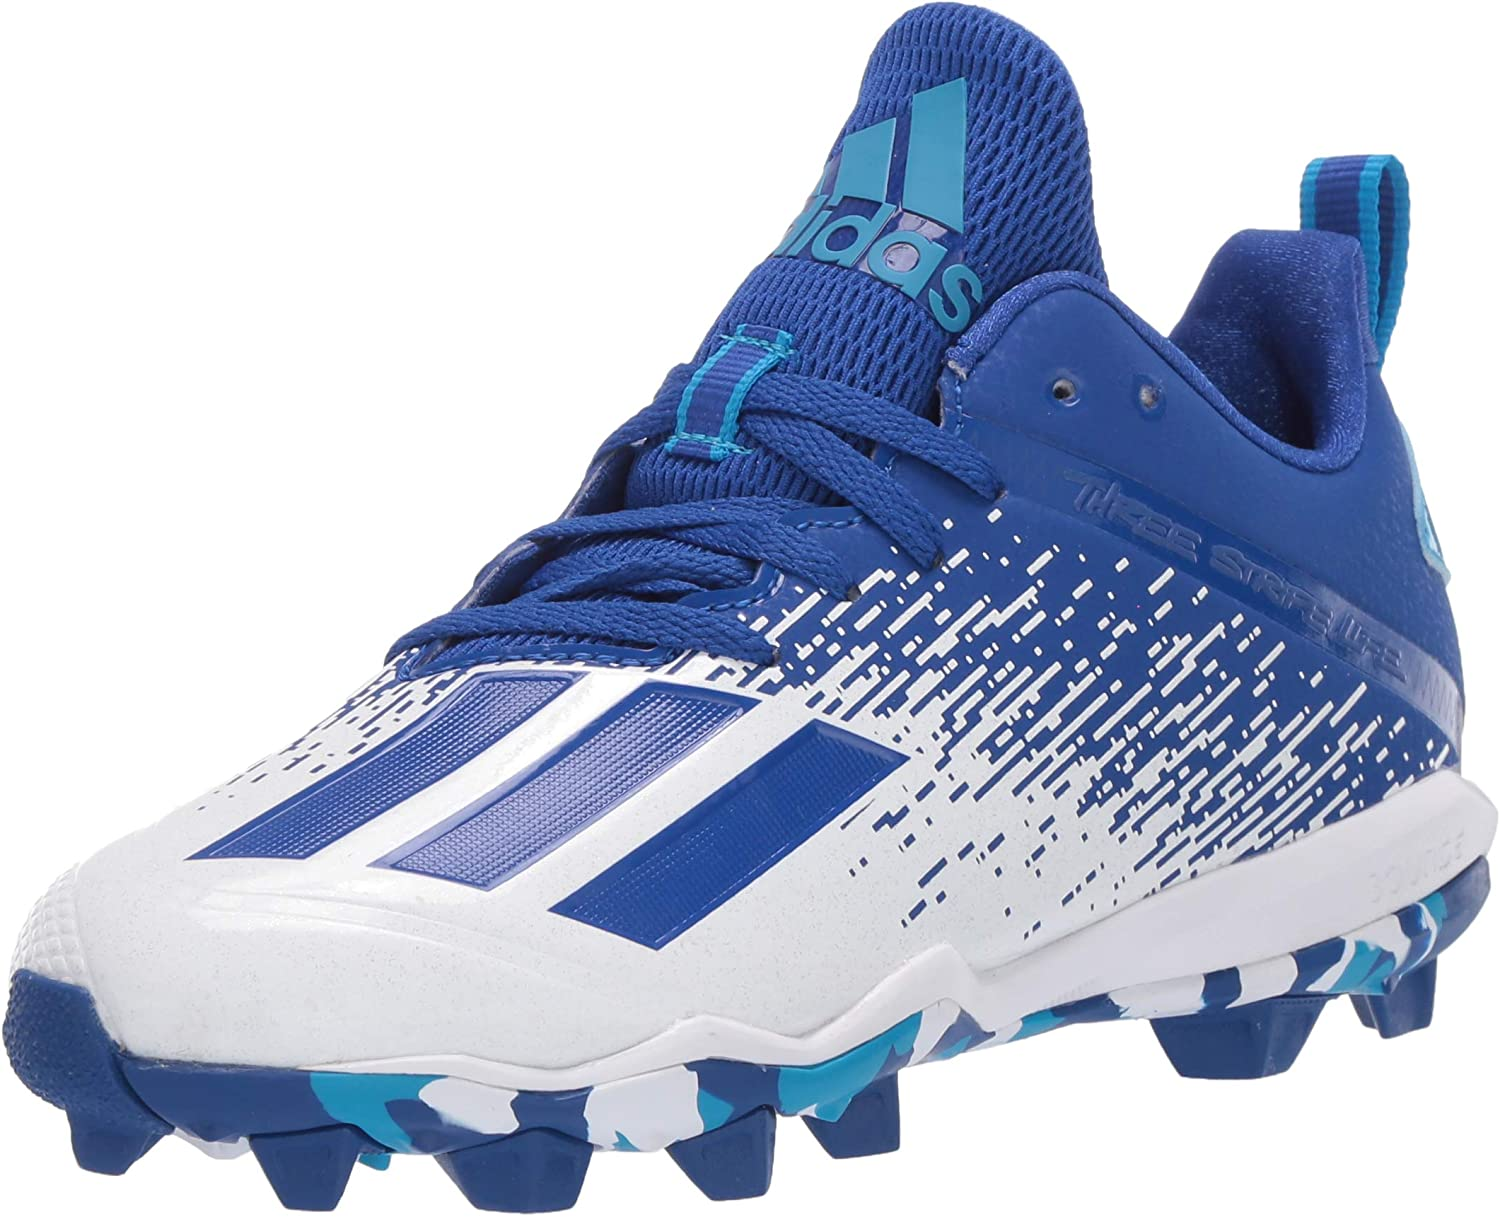 Be Challenge the lowest price of Japan ☆ super welcome adidas Unisex-Child Adizero Spark Football Shoe Mid